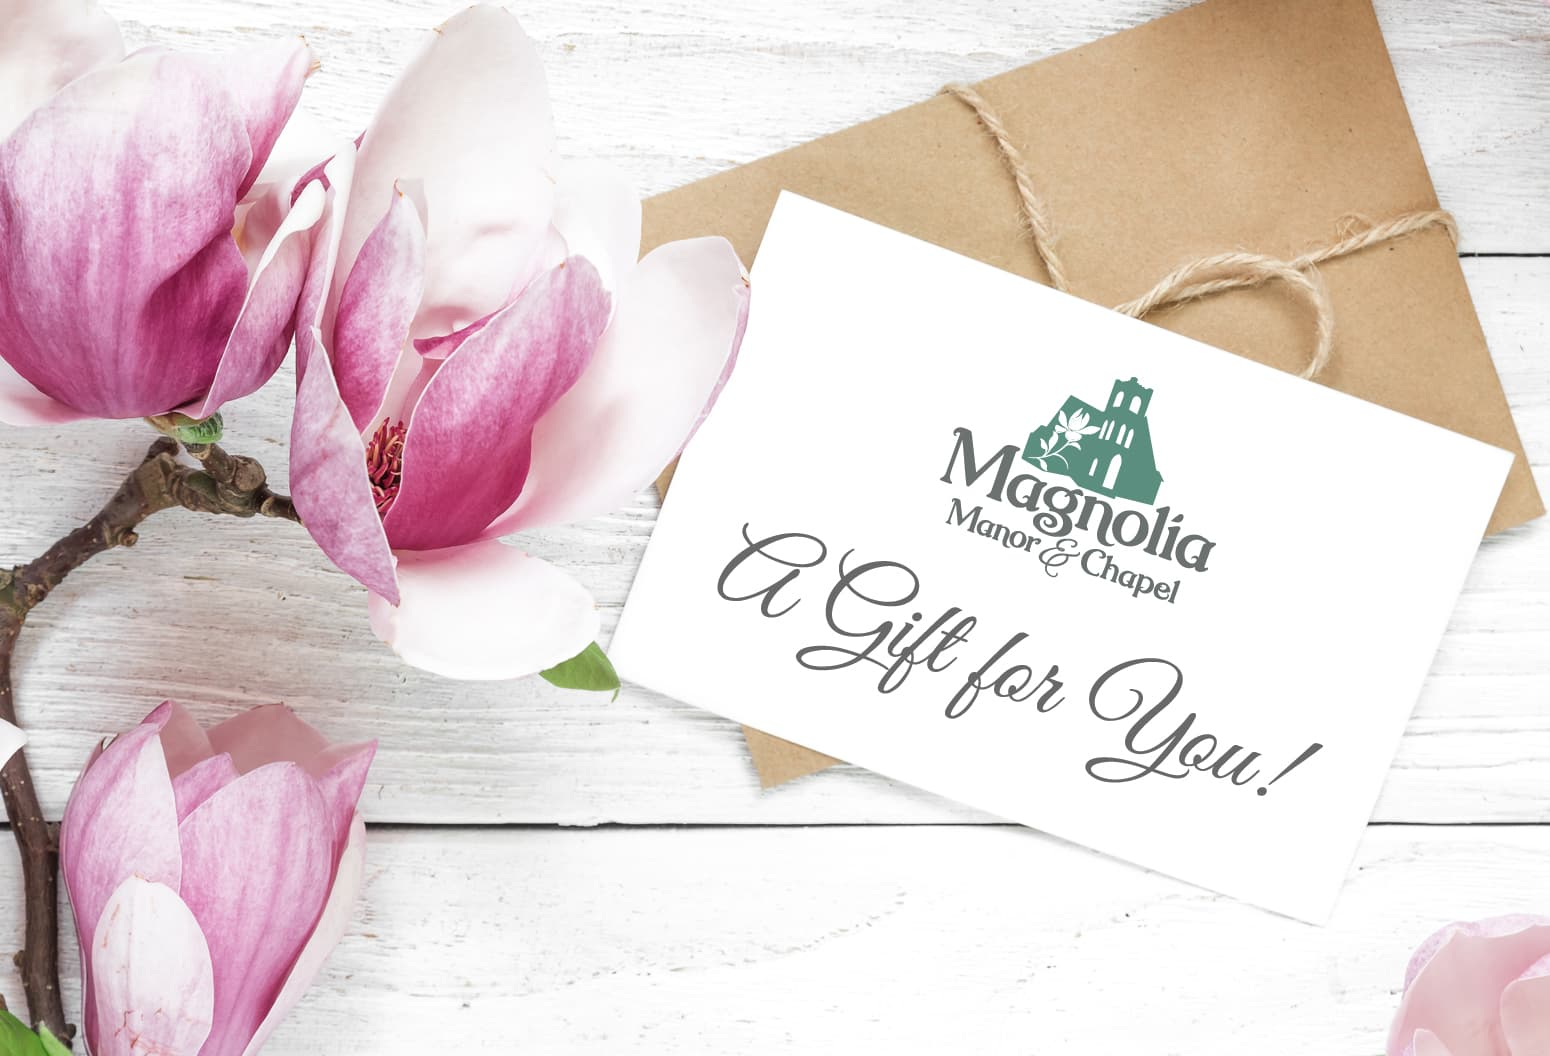 Magnolia Manor gift certificate with flowers